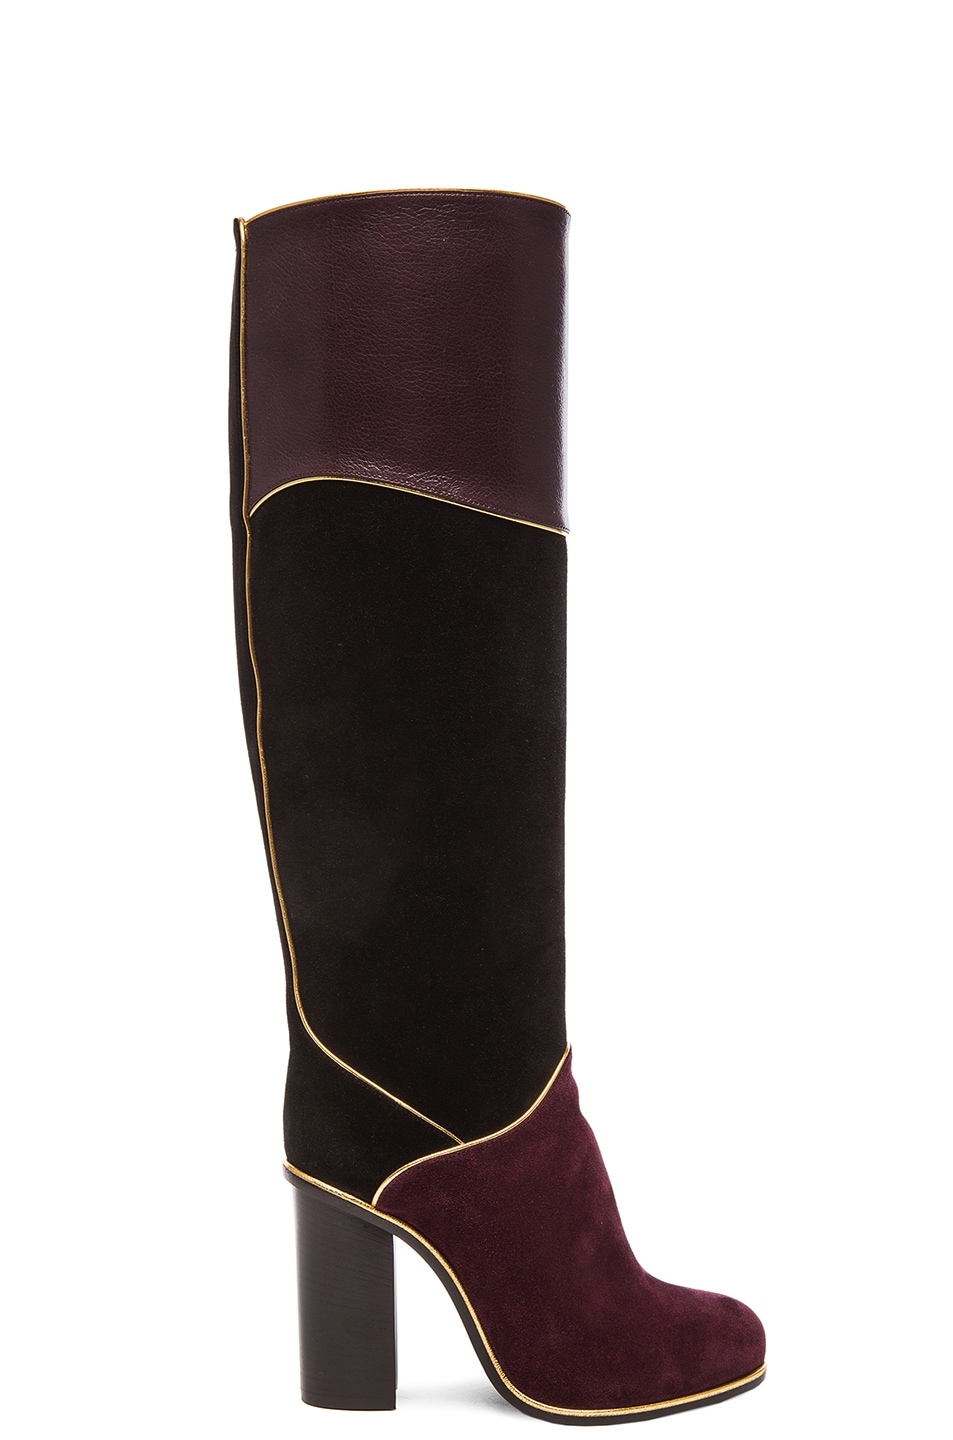 Image 1 of Lanvin Suede Calfskin Piping Boots in Black & Burgundy